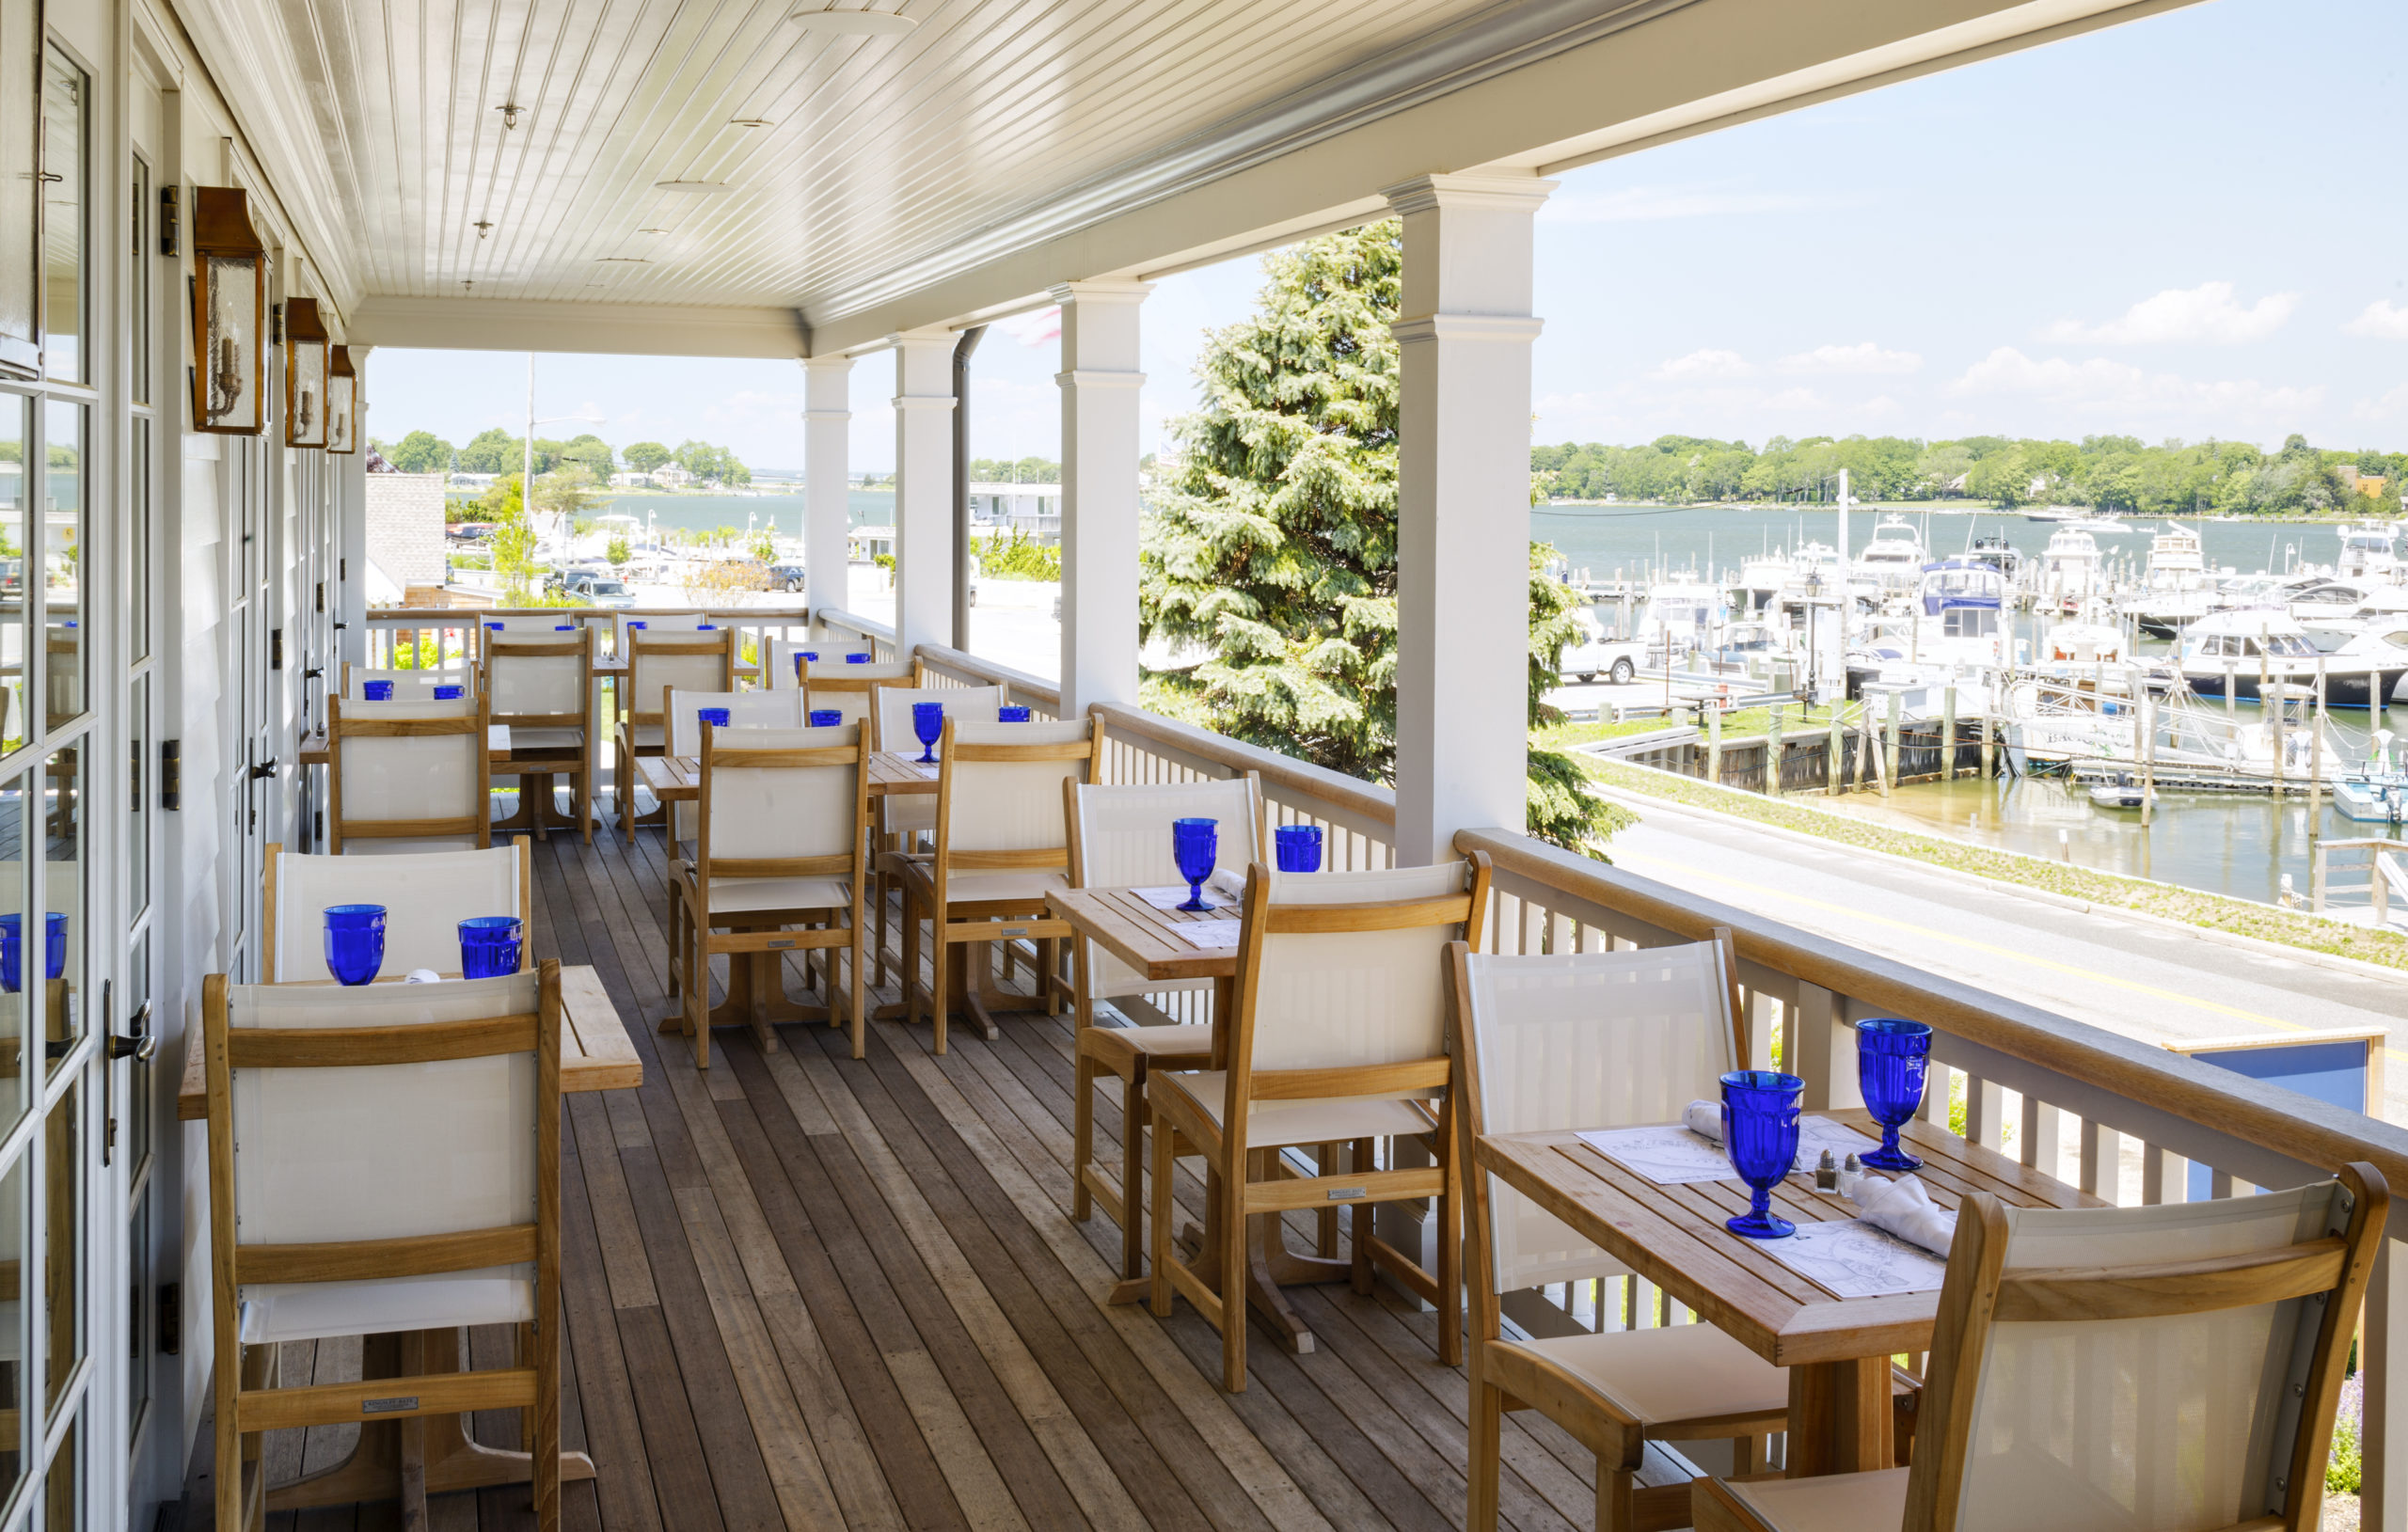 Dining with a view from the upper porch of Baron's Cove.